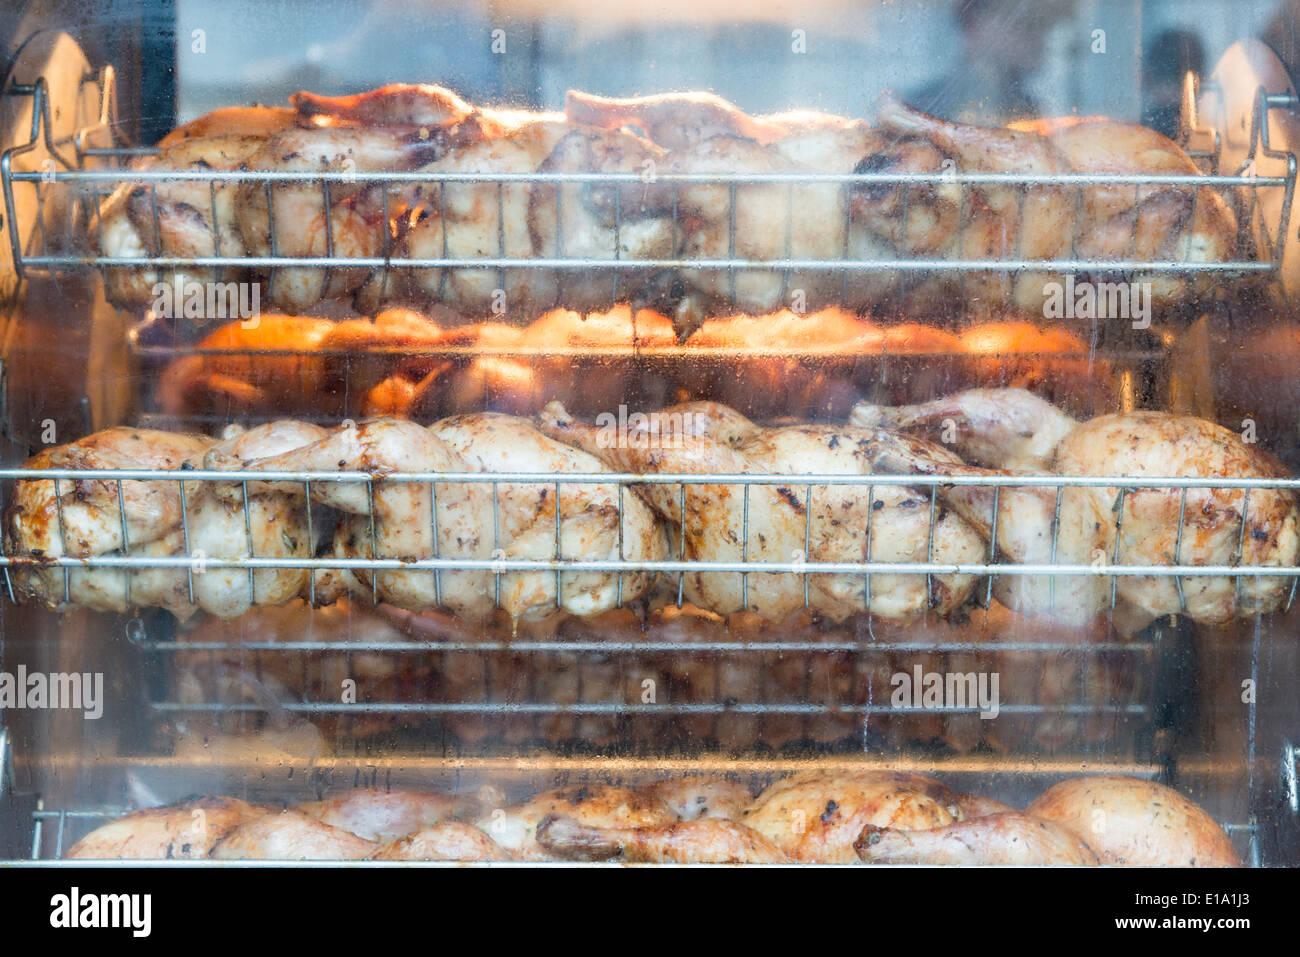 Chickens roasting in a rotisserie - Stock Image